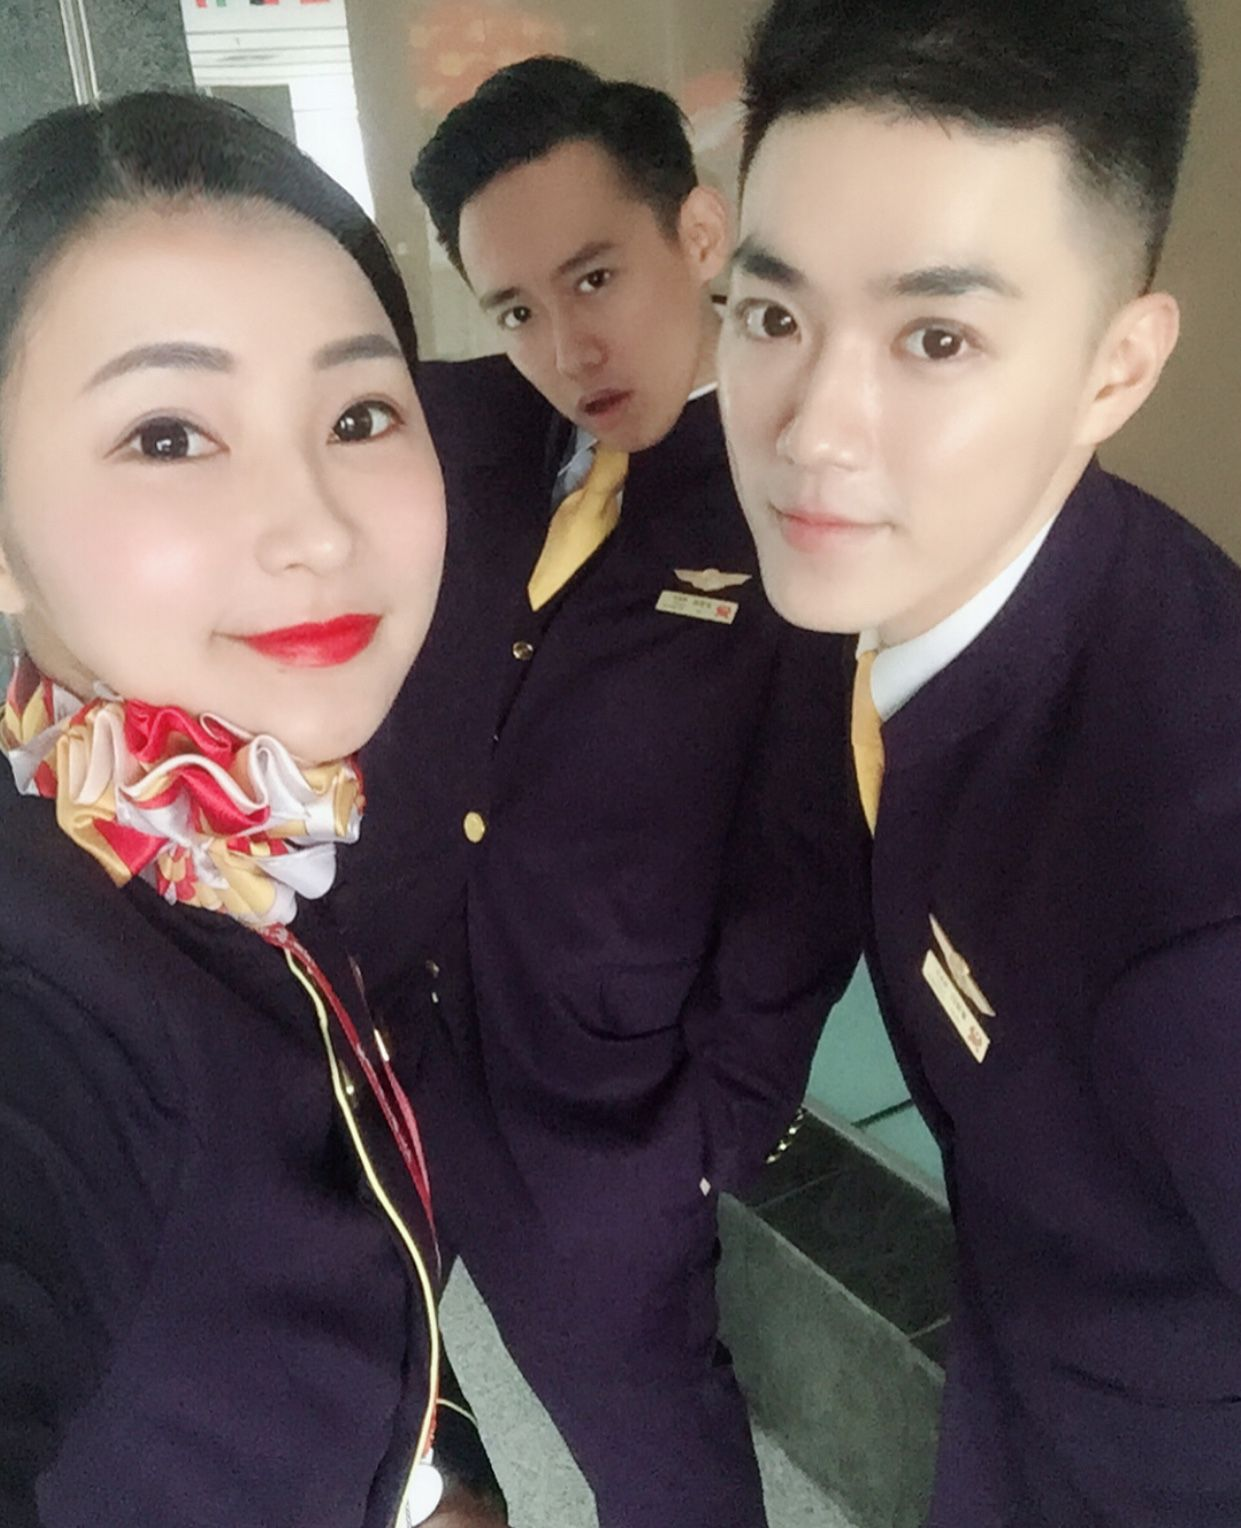 【China】 Hainan Airlines cabin crew (old uniform) / 海南航空 客室乗務員 舊制服 【中國】 | アライアンス,航空, estimated,Macao,金鵬會員服務等, and historical data for 海南航空公司 497 (HU497/CHH497) including scheduled, 航空